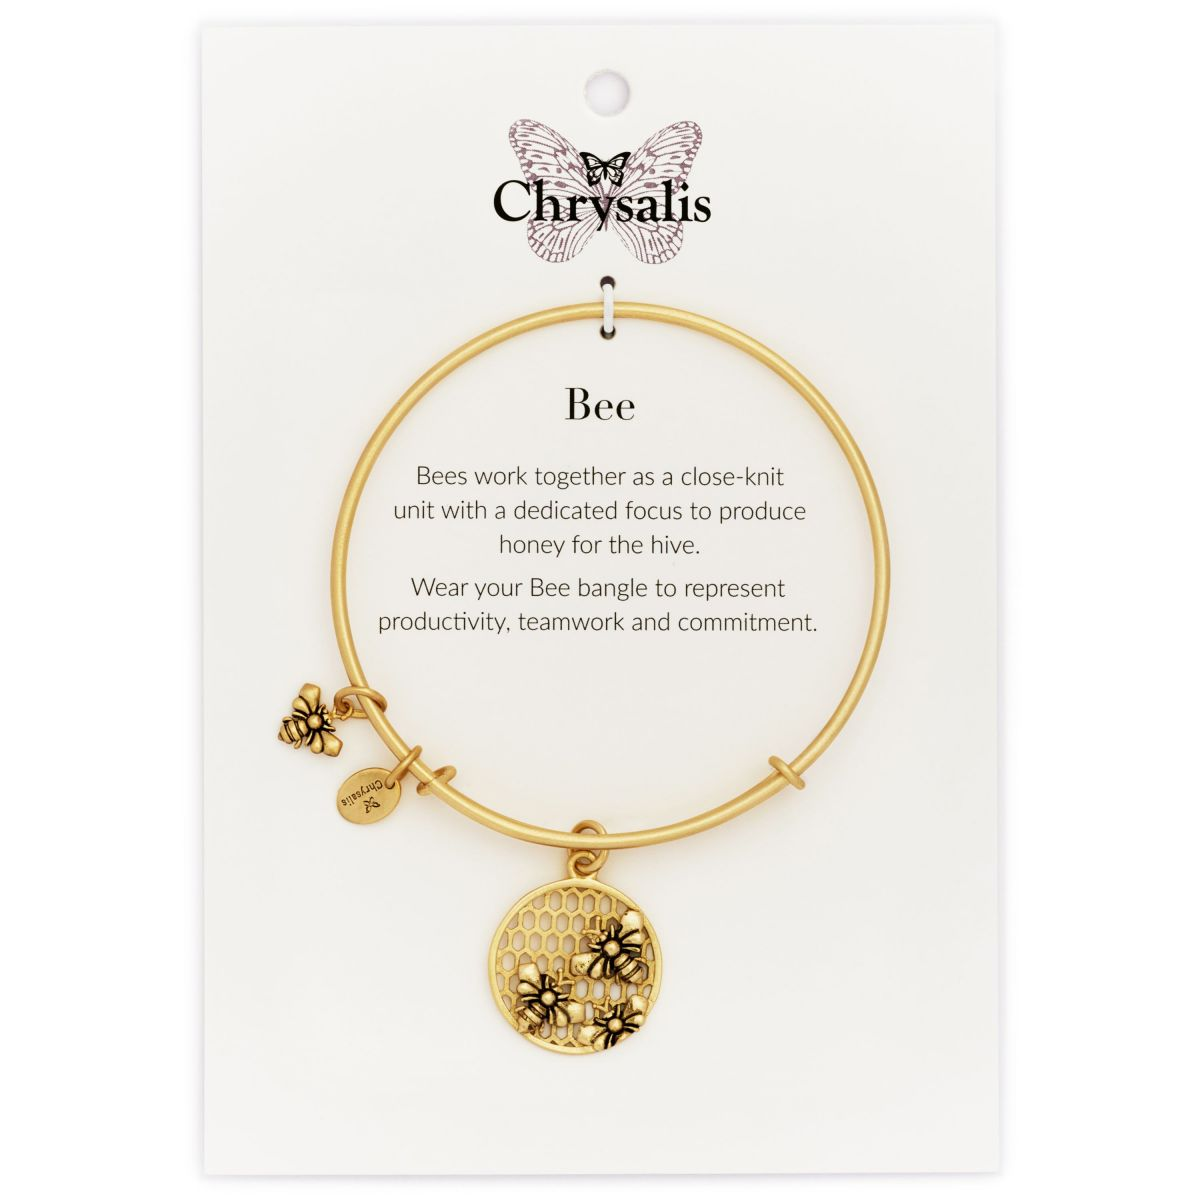 Chrysalis Spirited Bee Gold Plated Bangle CRBT1206GP qerlZlC